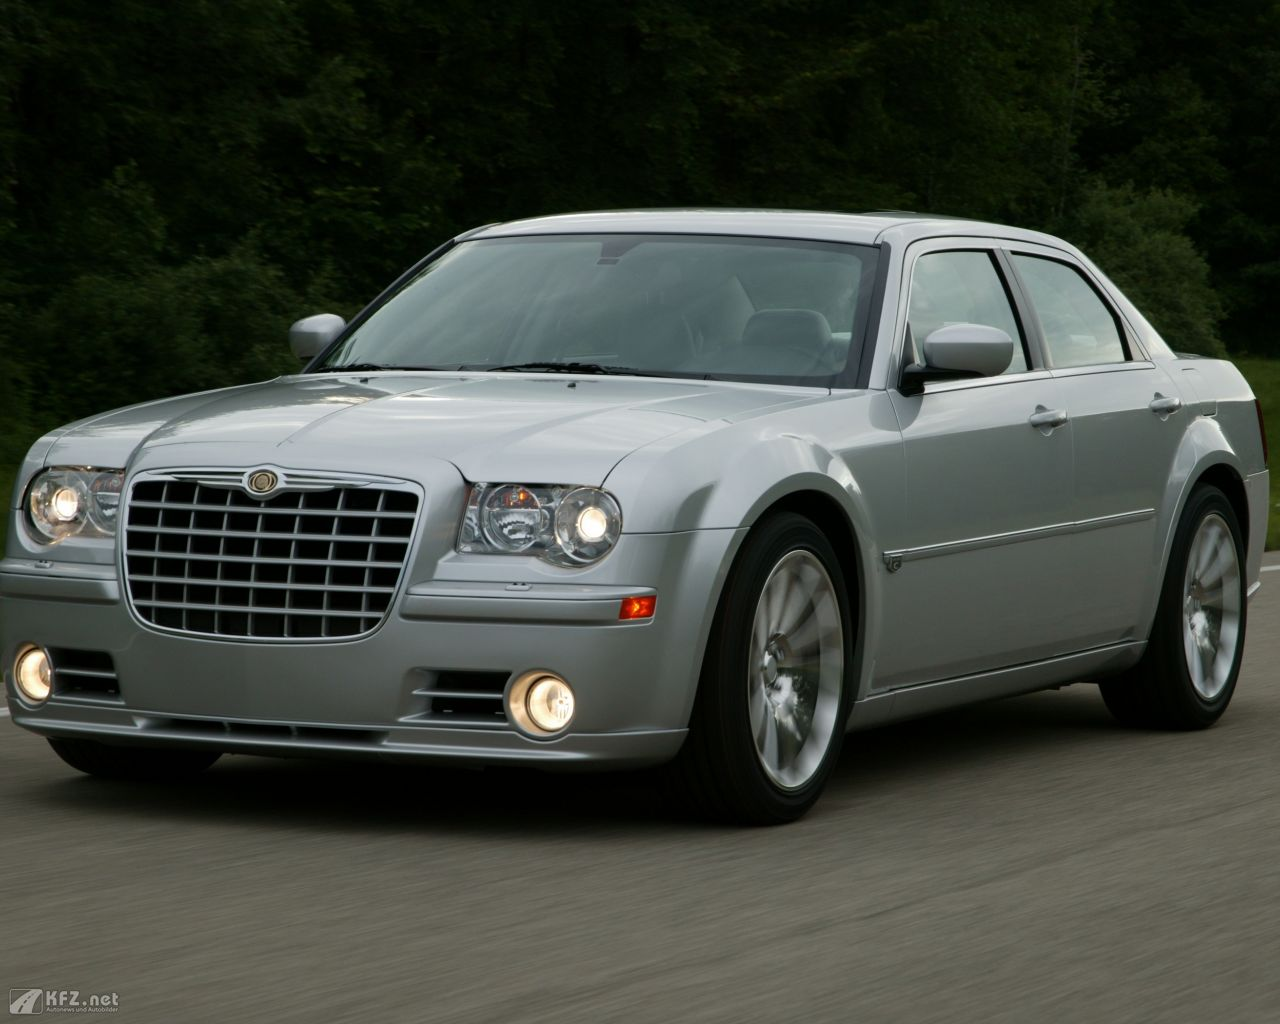 chrysler-300c-1280x1024-21